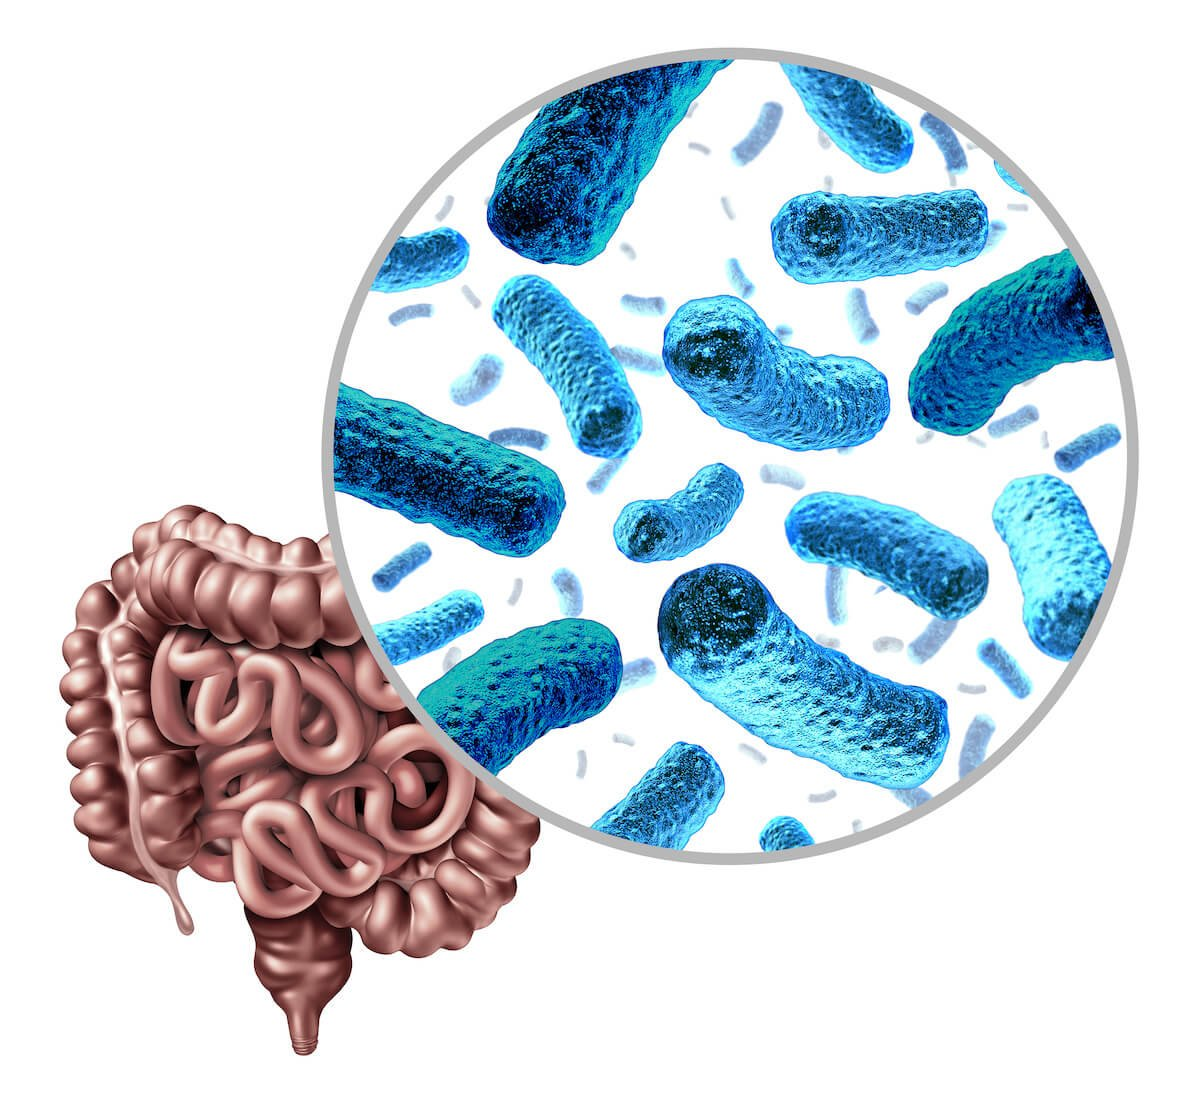 Bacteria and intestines